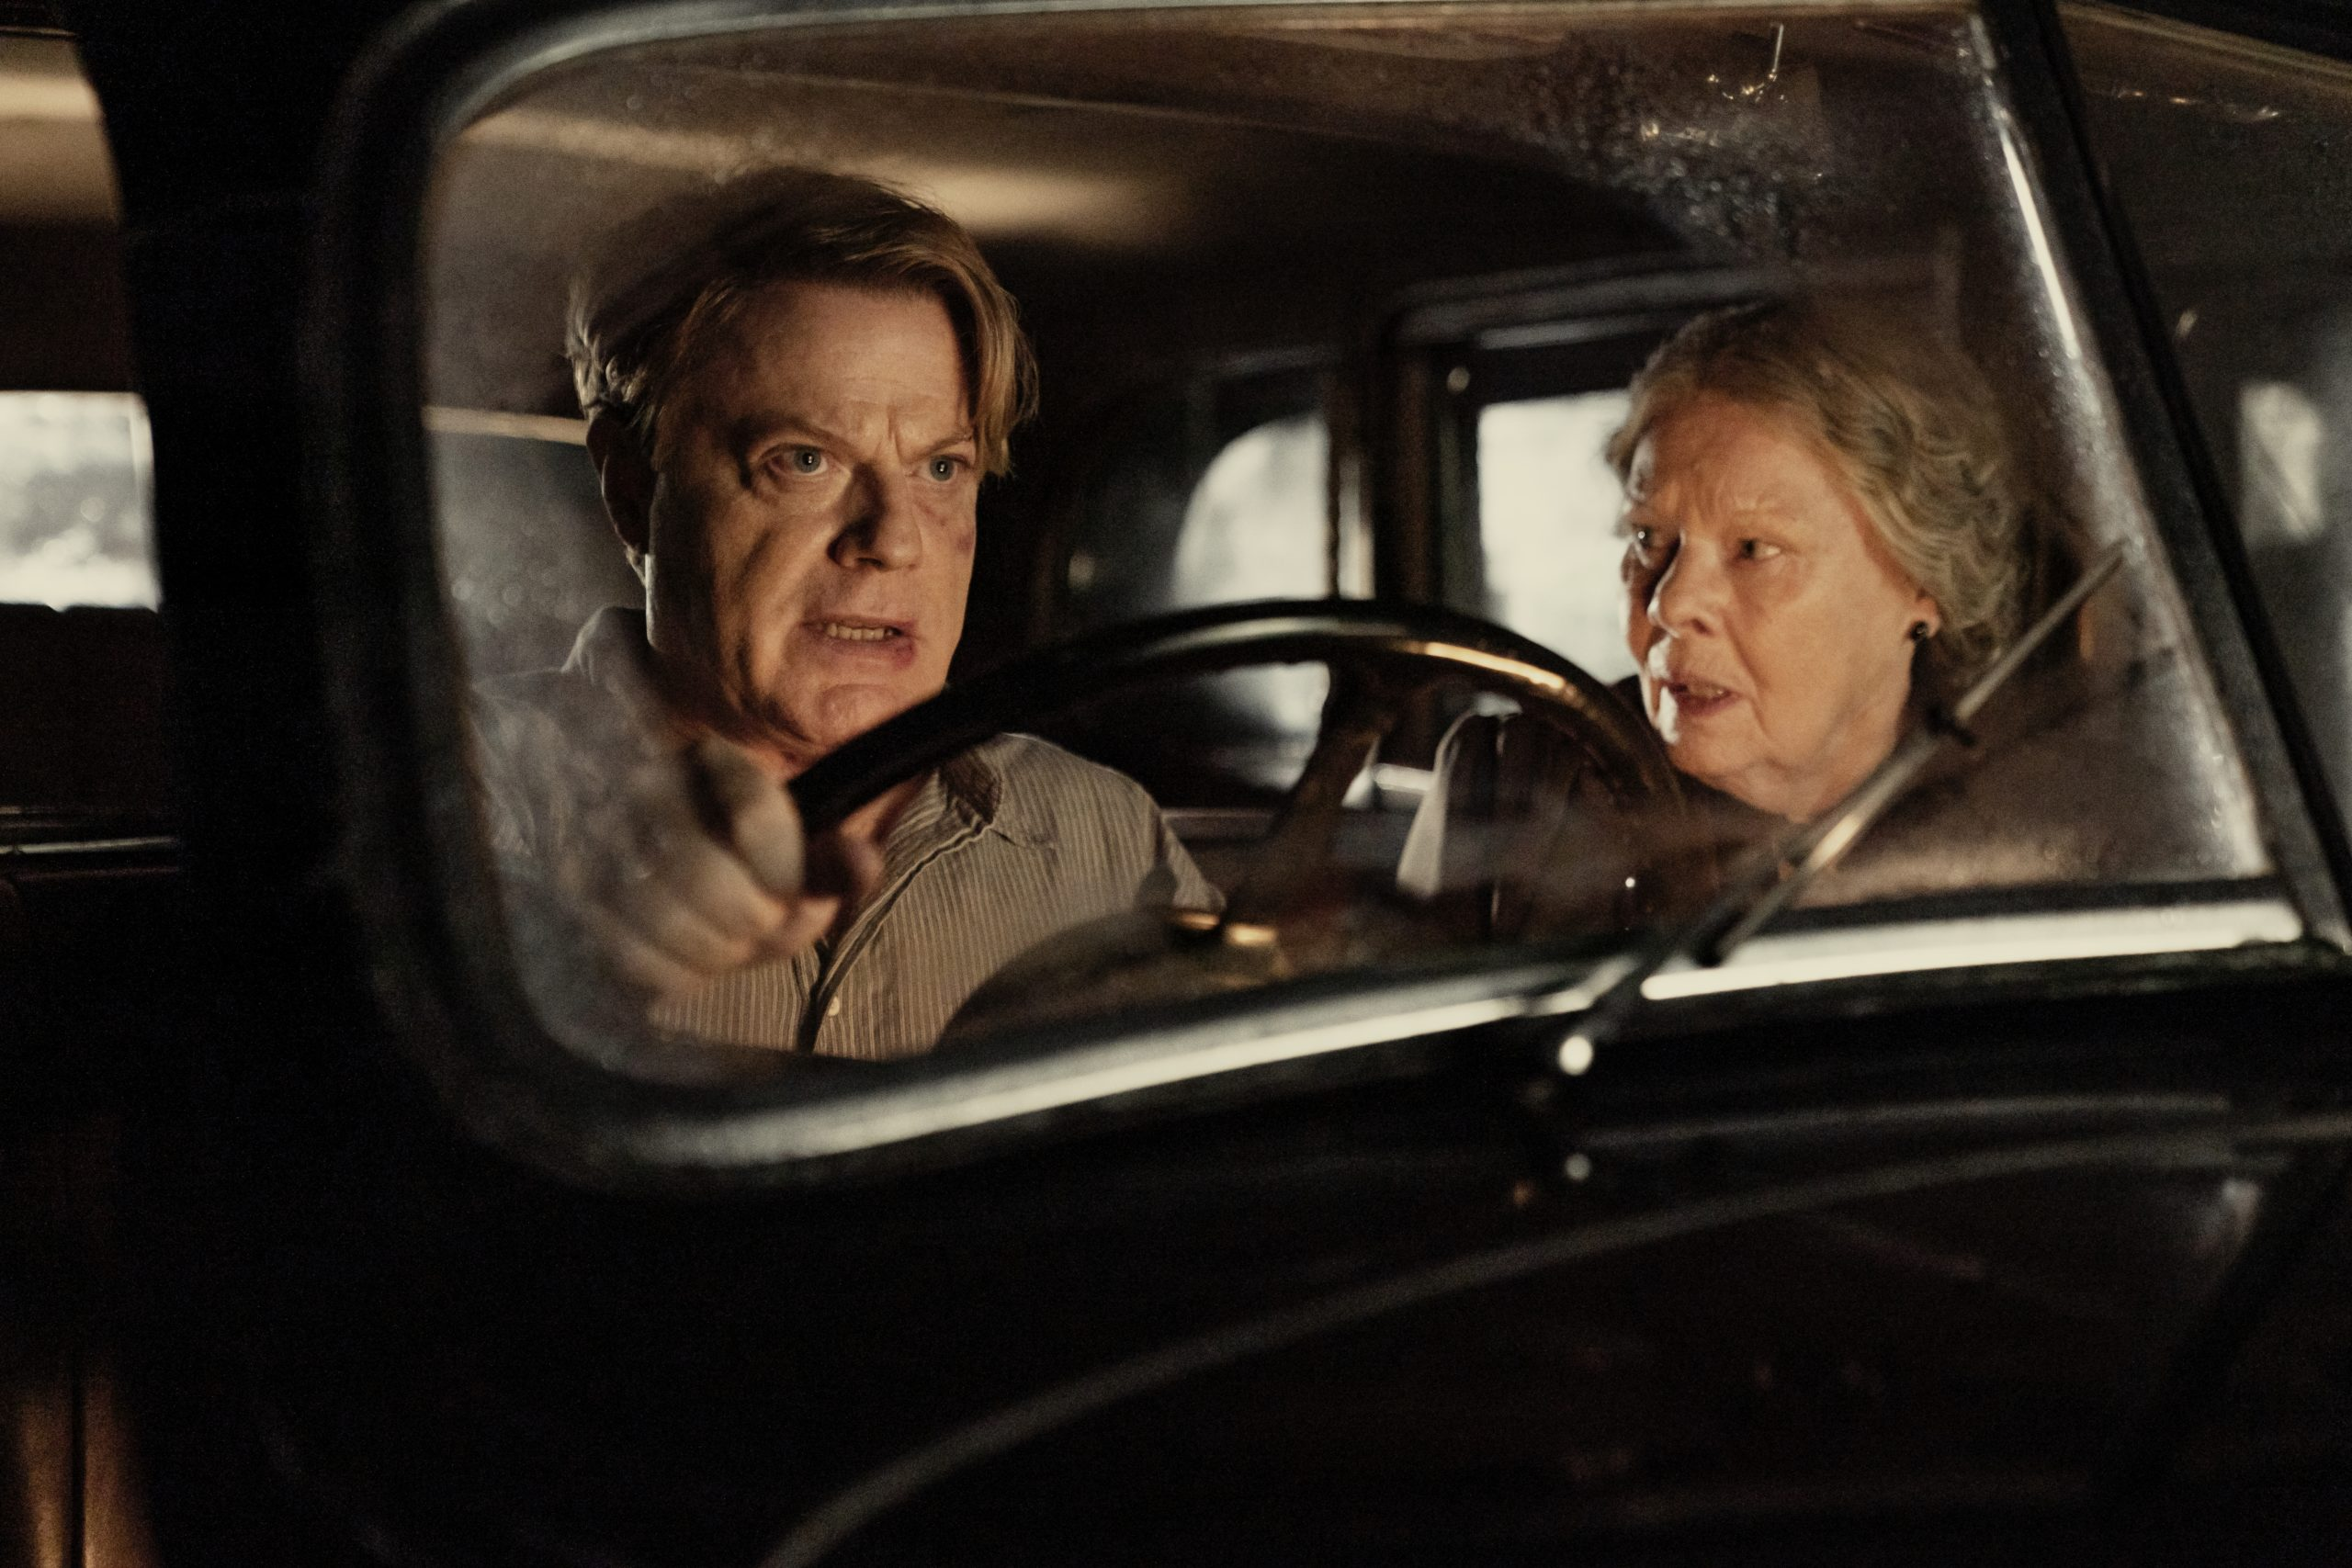 [Review] 'SIX MINUTES TO MIDNIGHT' – Izzard throws herself into the role of a spy in tense war-time thriller